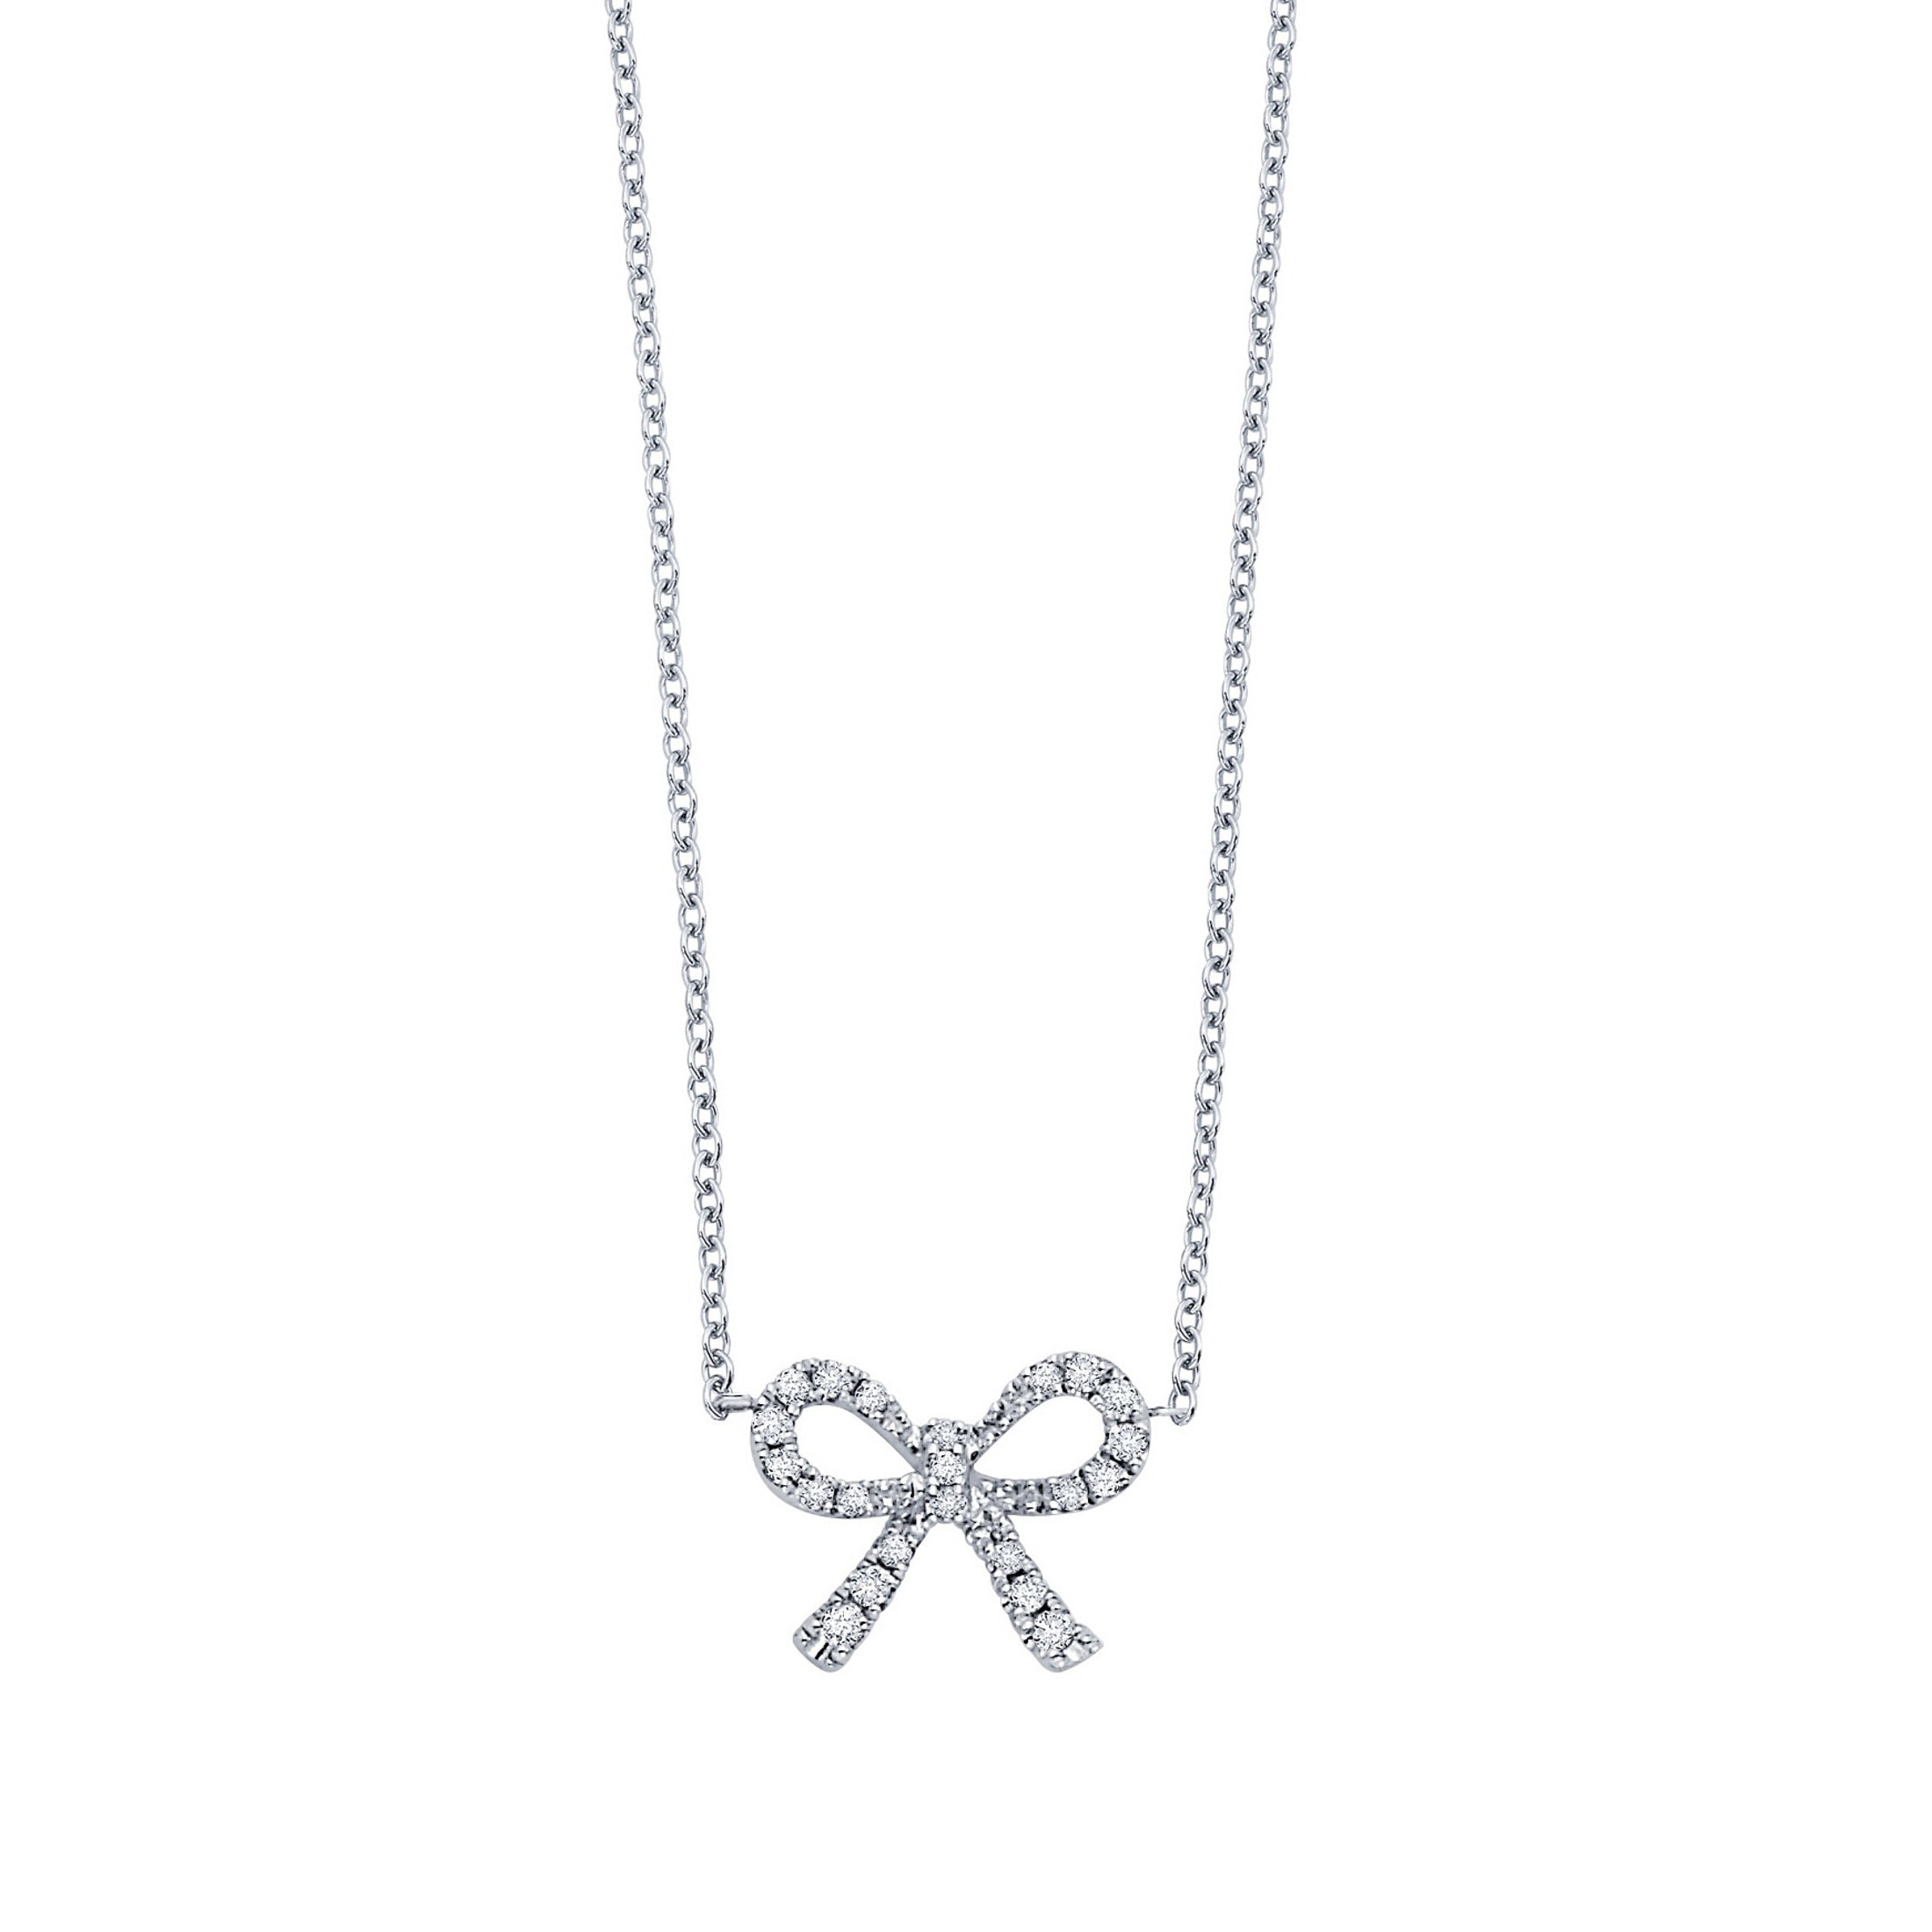 Diamond Bow Necklace, .10 Carat, 14K White Gold, 16 Inches